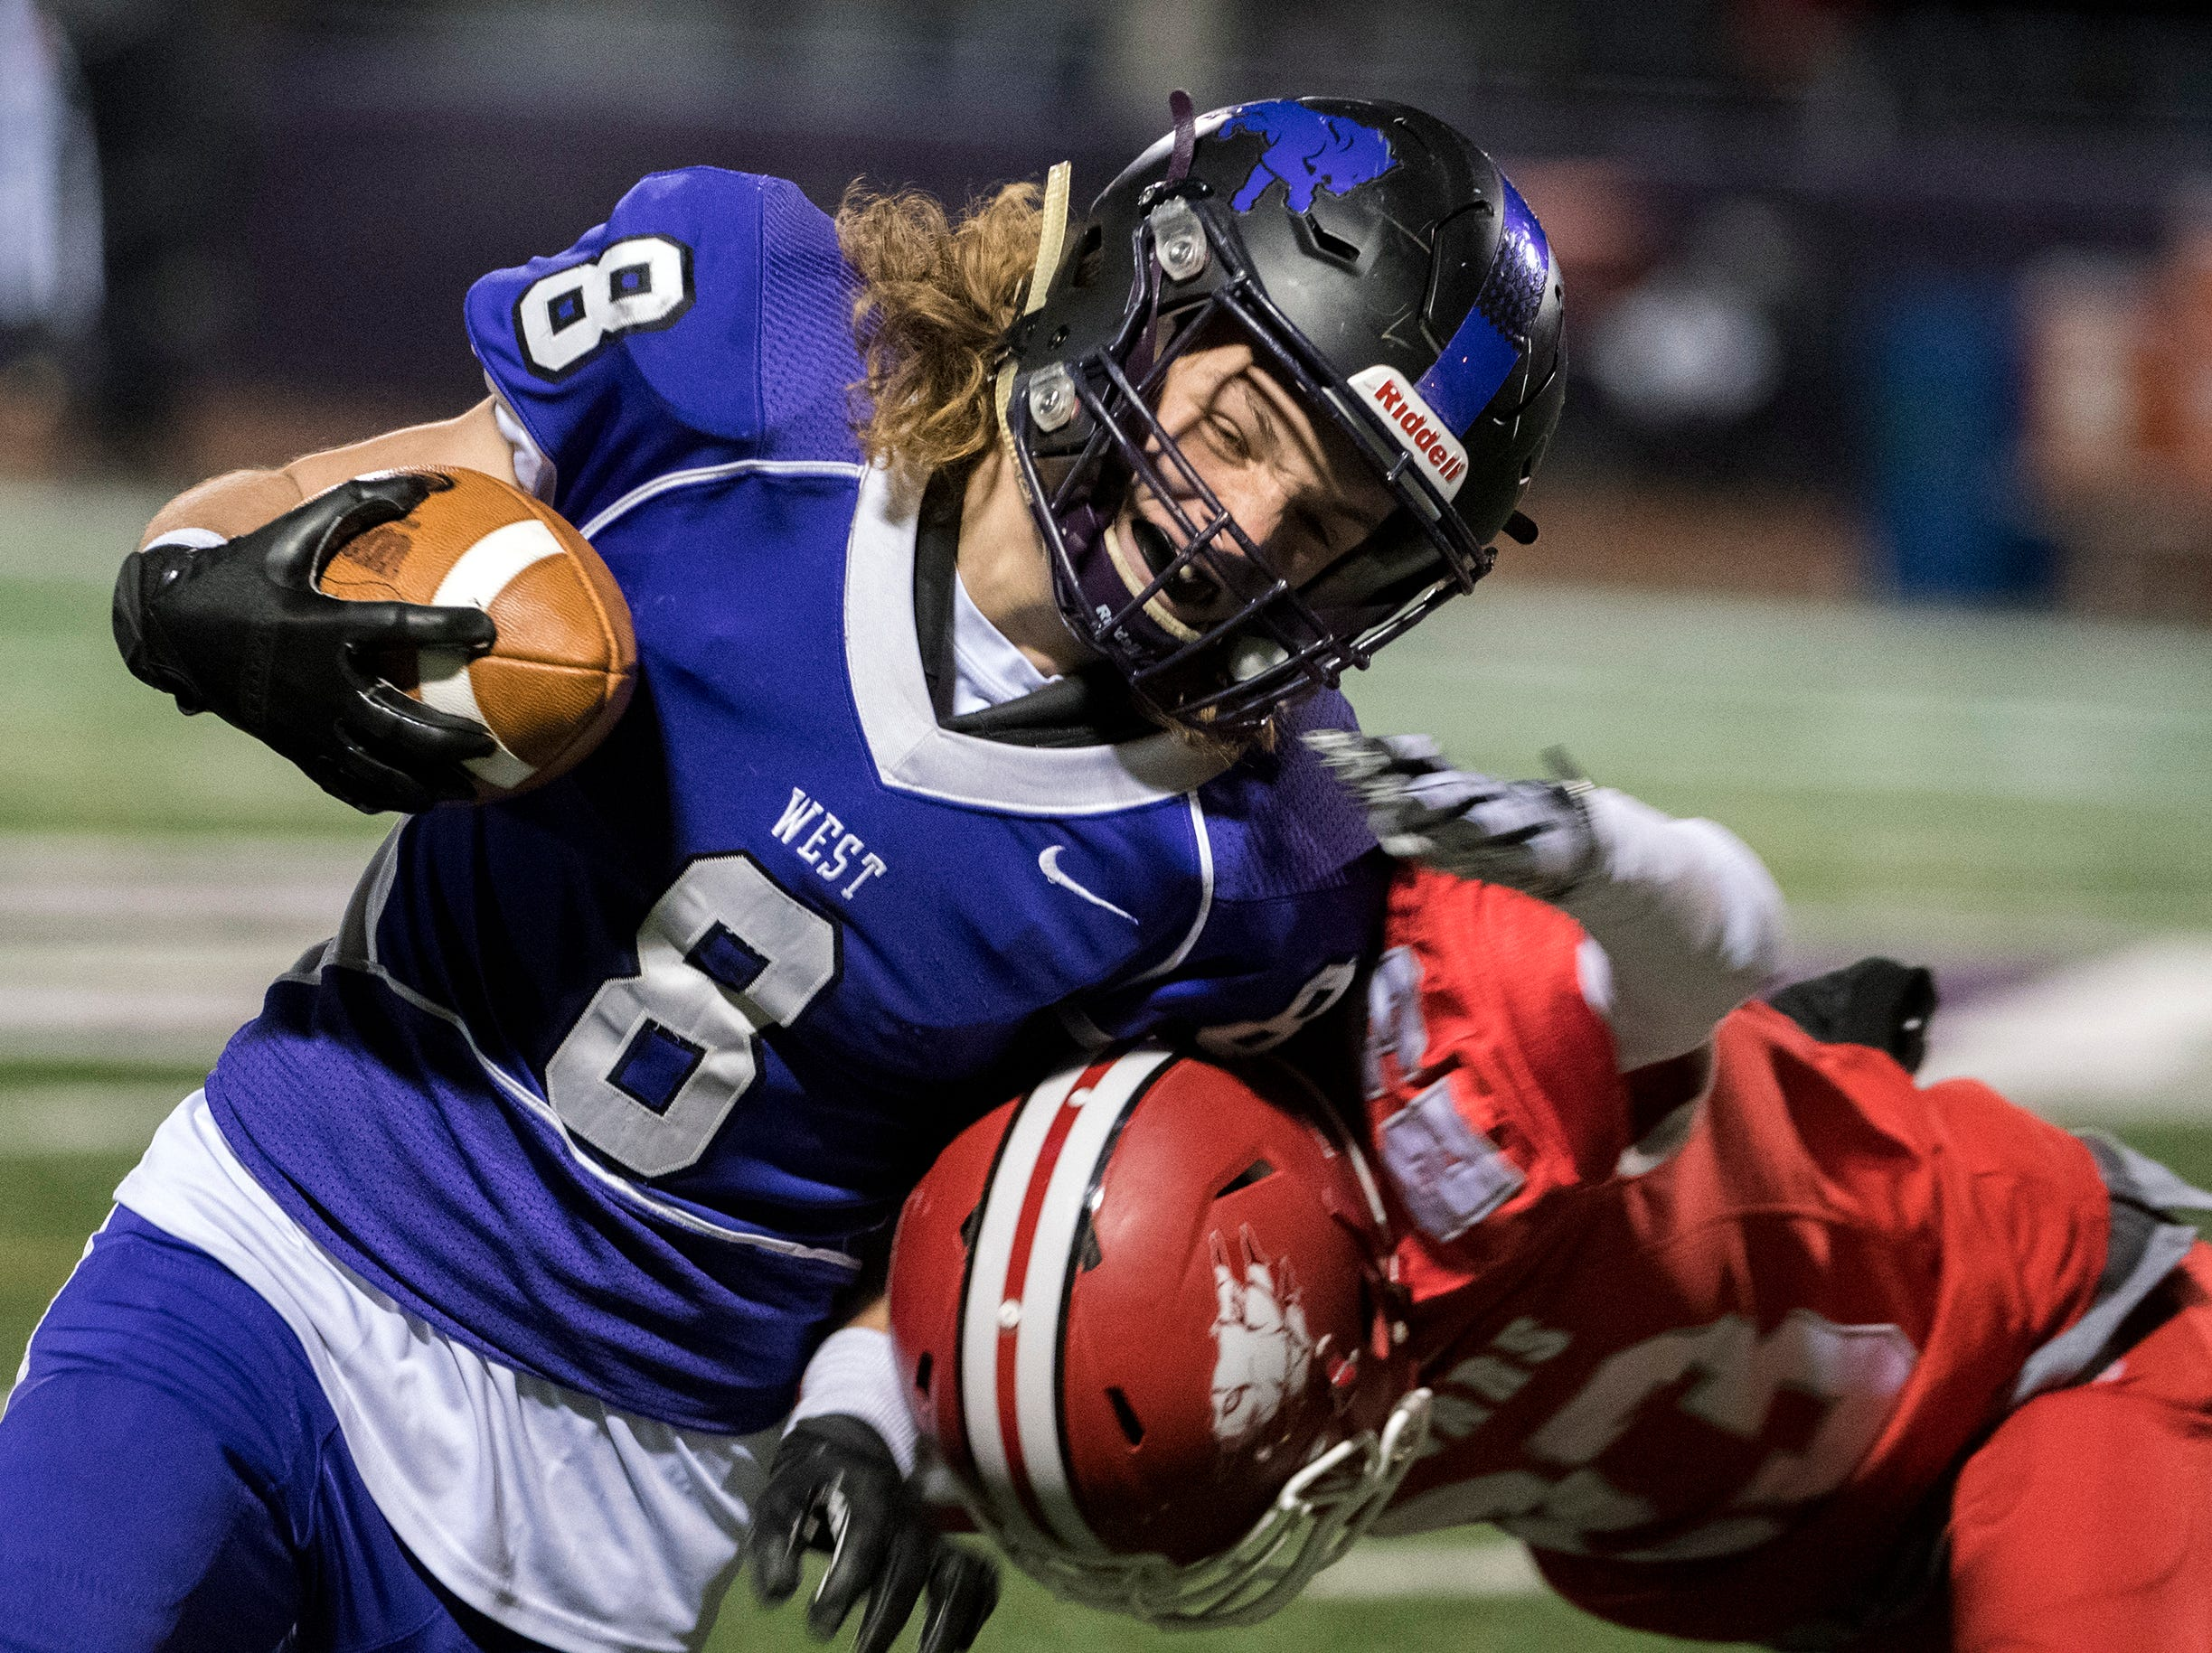 West's Nick Jester (8) carries the ball against East Wednesday, Nov. 21, 2018 at Cherry Hill West High School in Cherry Hill, N.J.